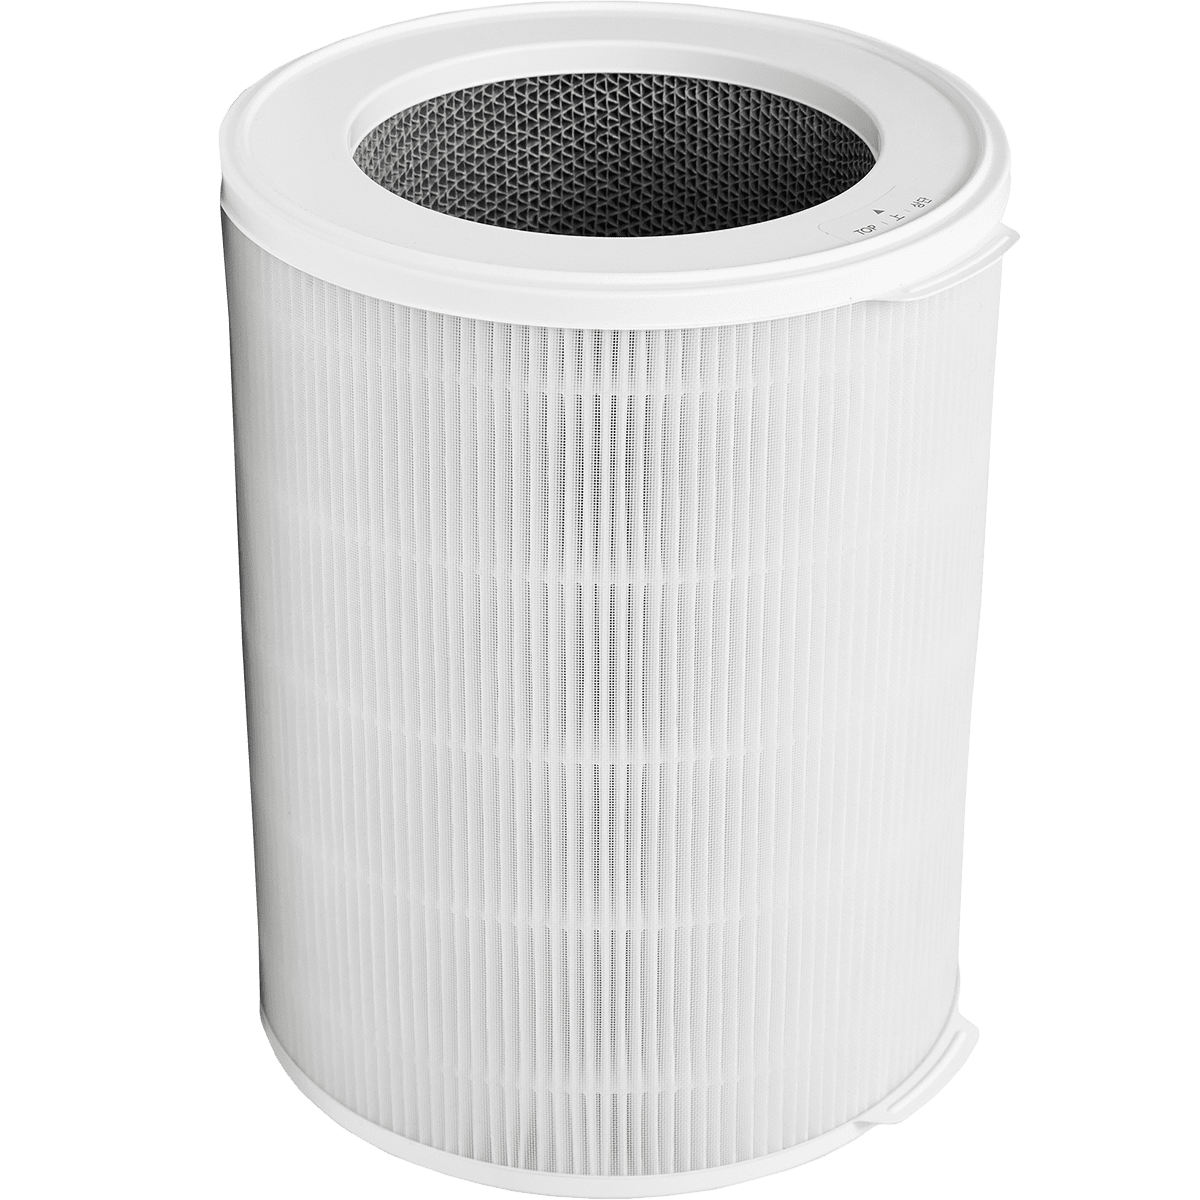 Winix Replacement Filter N for NK100/NK105 Air Cleaners wi5996